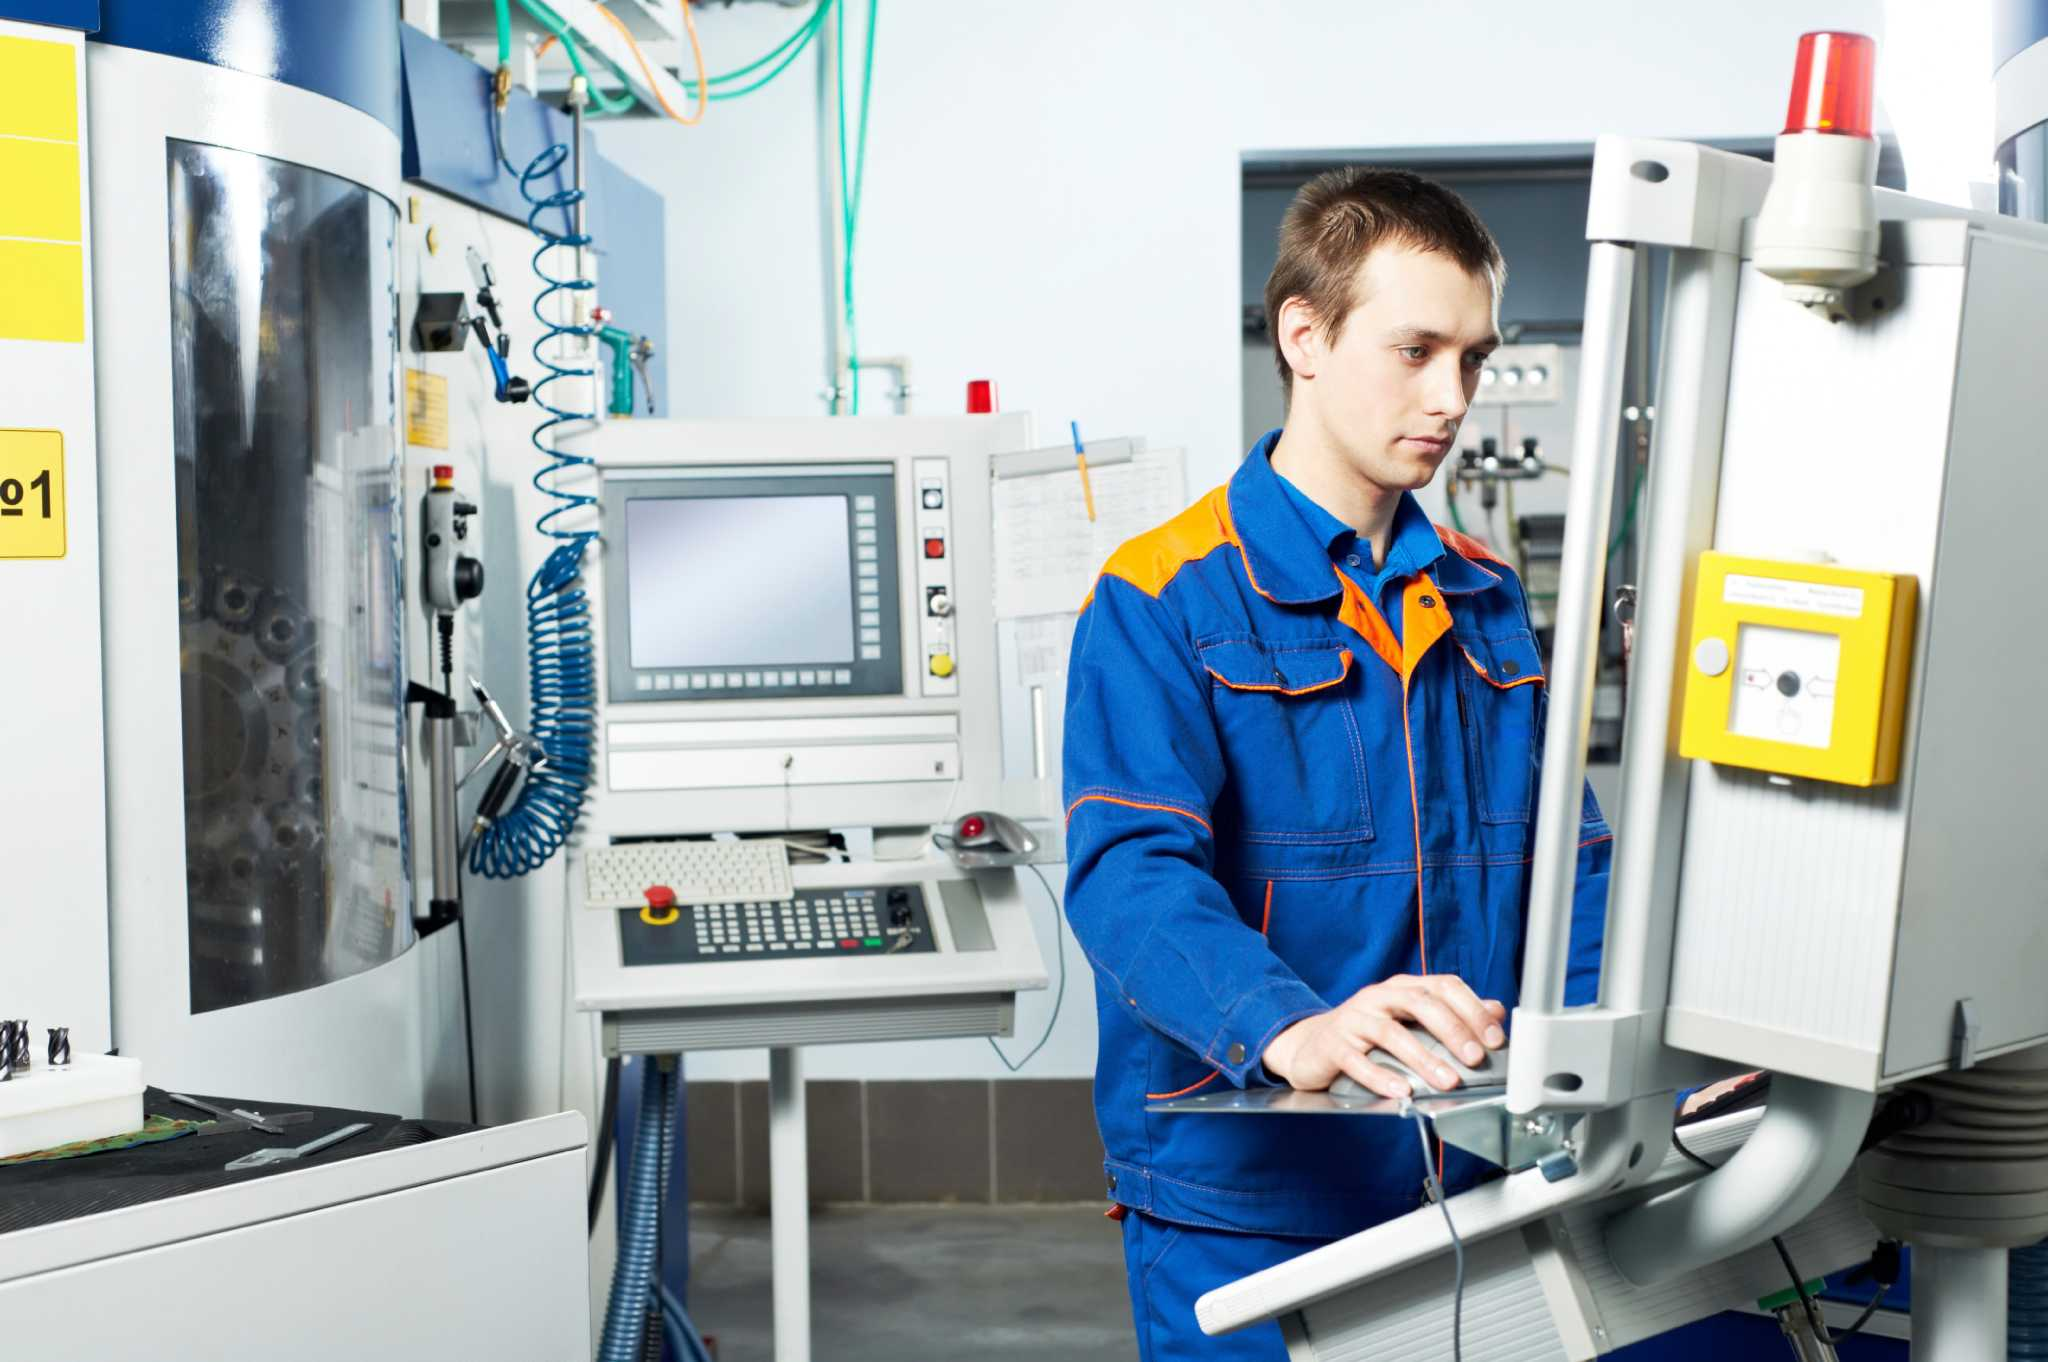 CNC training opens doors to manufacturing